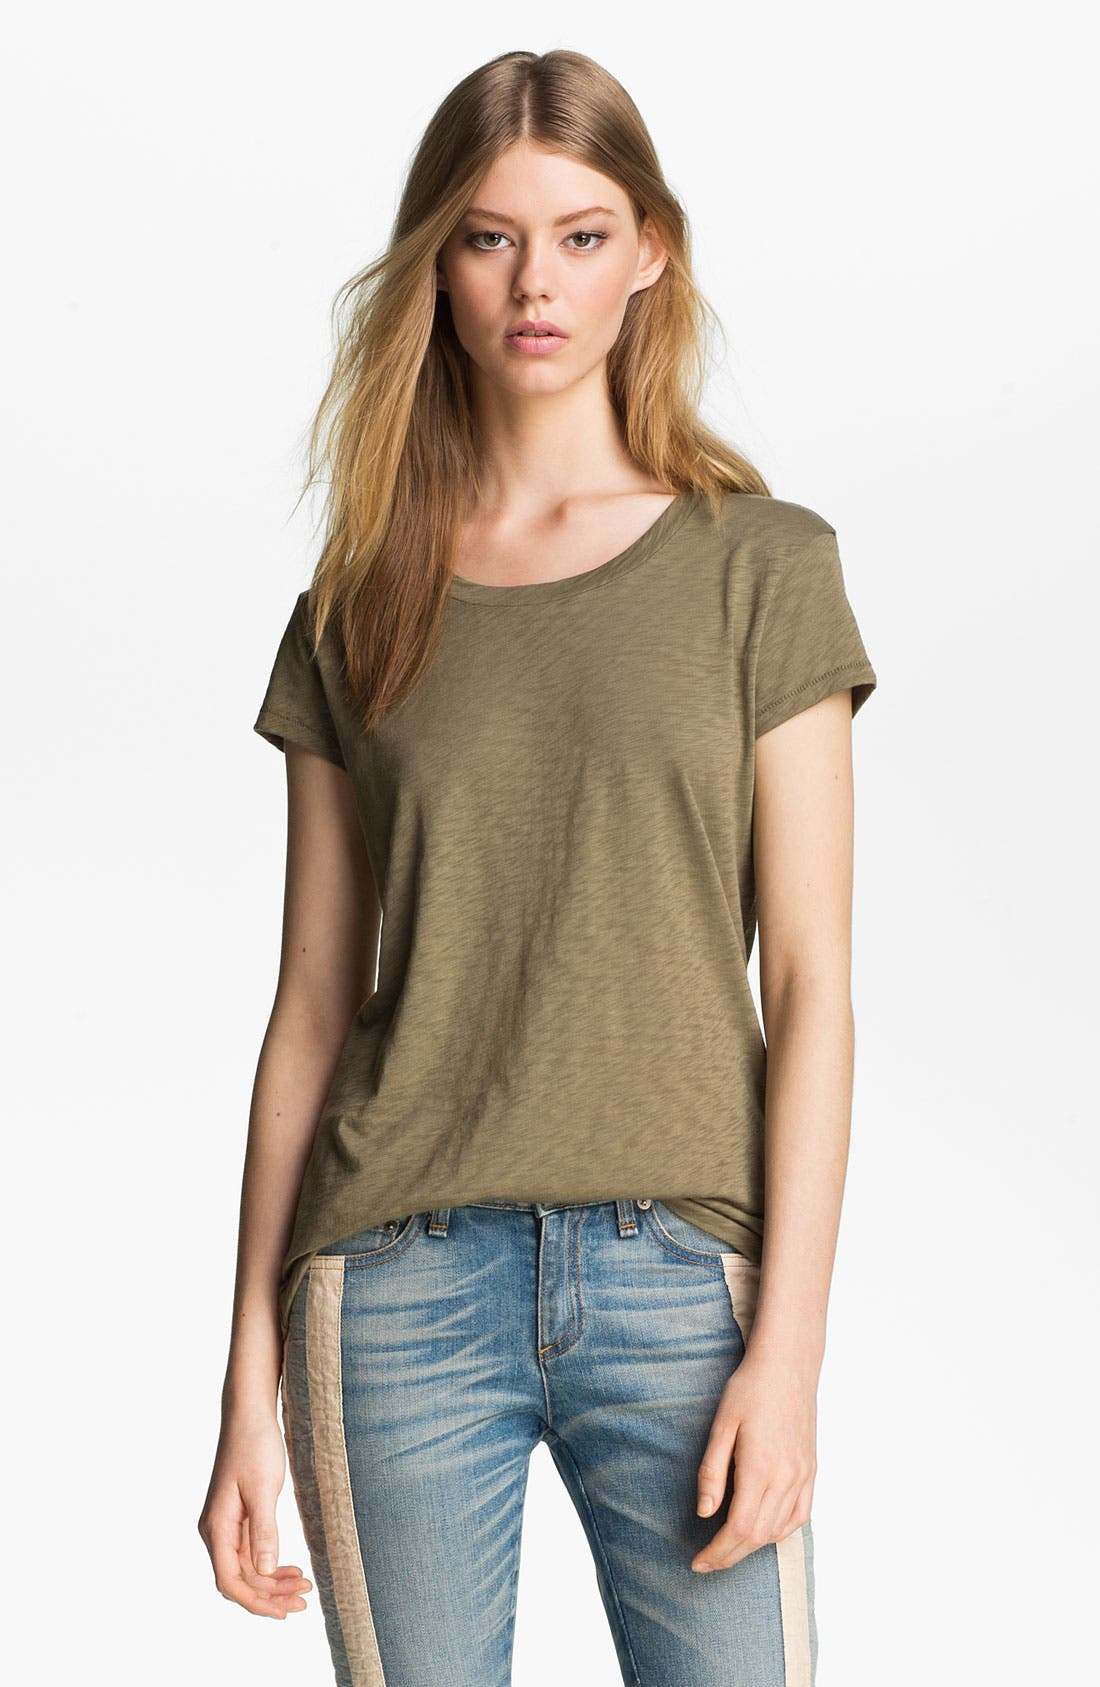 Alternate Image 1 Selected - rag & bone/JEAN 'The Basic Brando' Tee